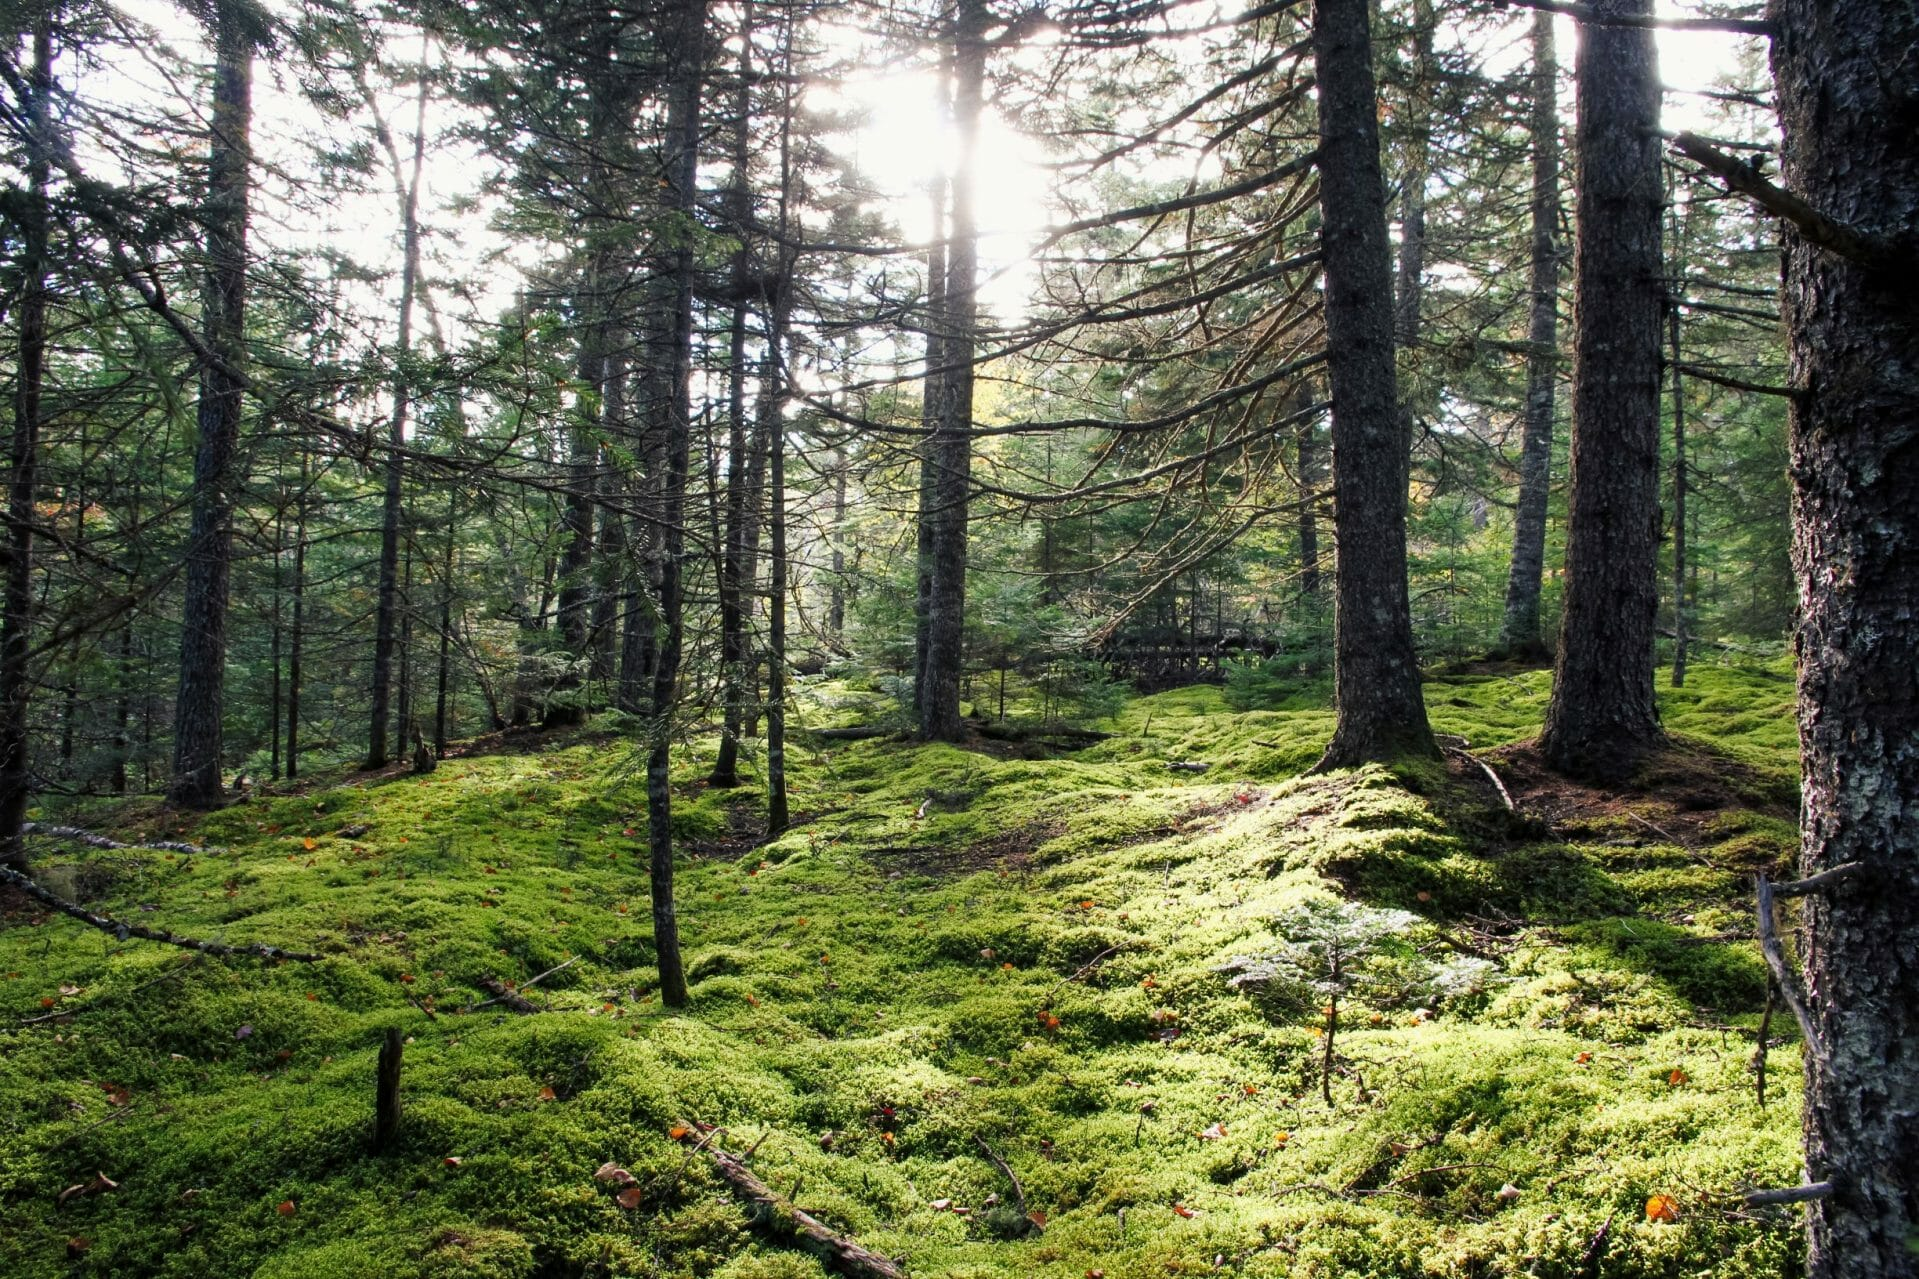 Mossy forest ground with trees and sunlight in background